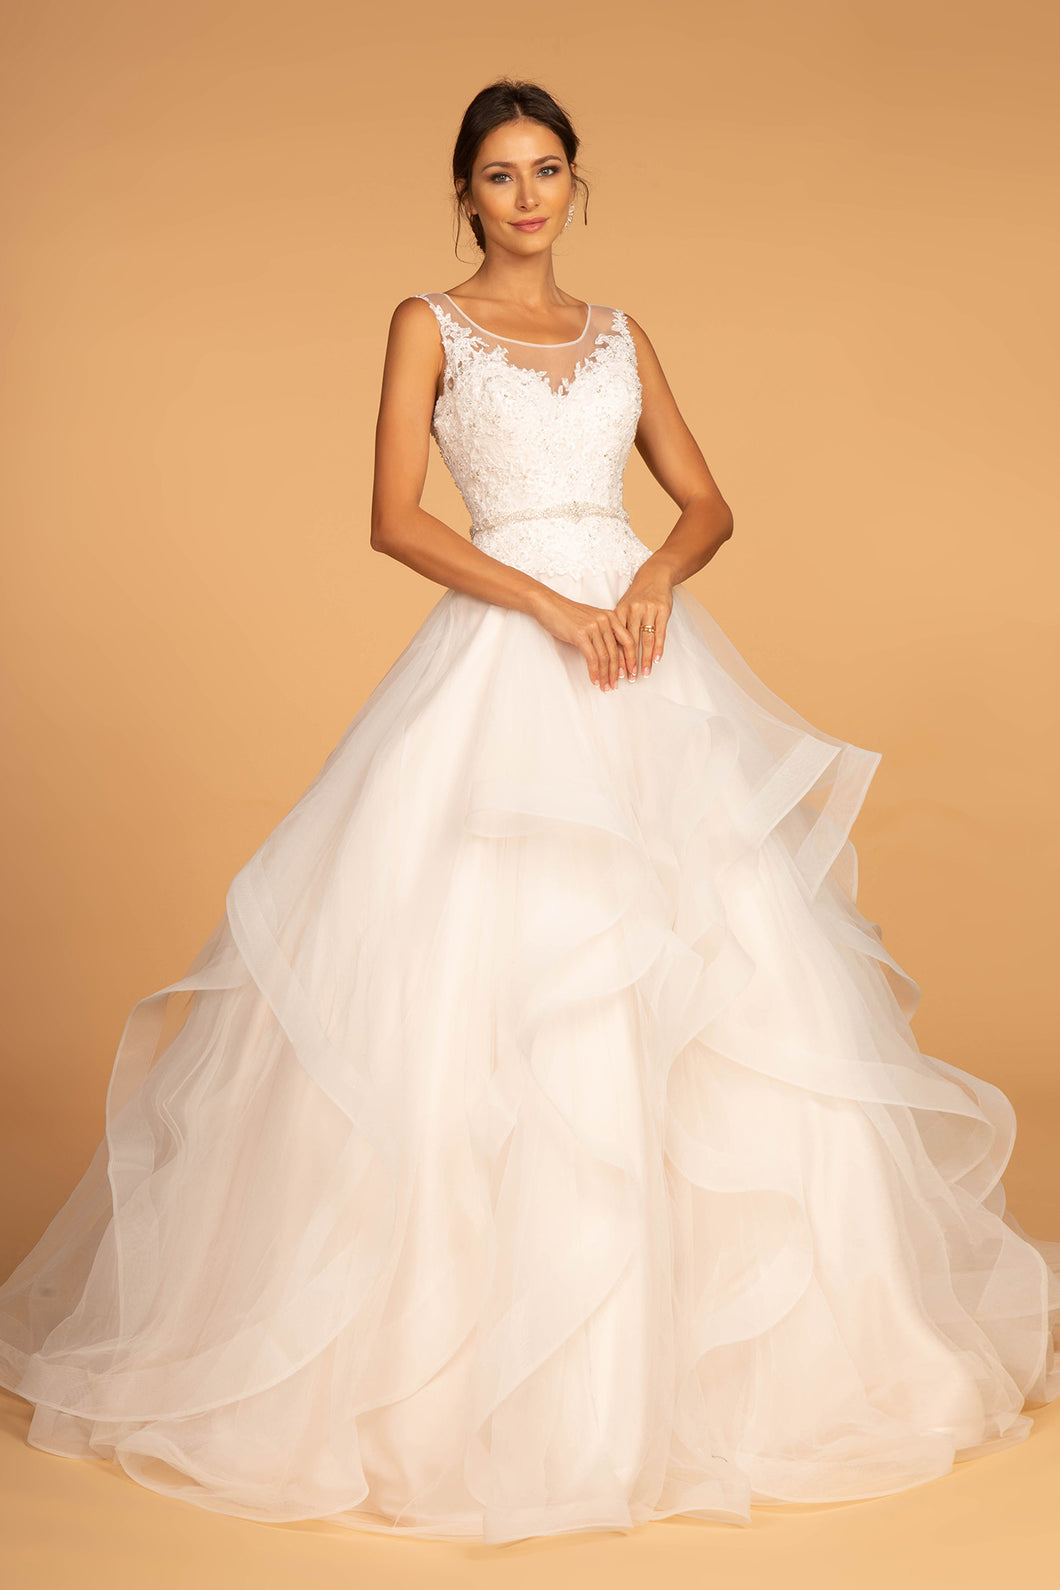 Bonnie Wedding Dress Scoop Neckline with Multi-Layer Skirt G2599HKR-Ivory/champagne